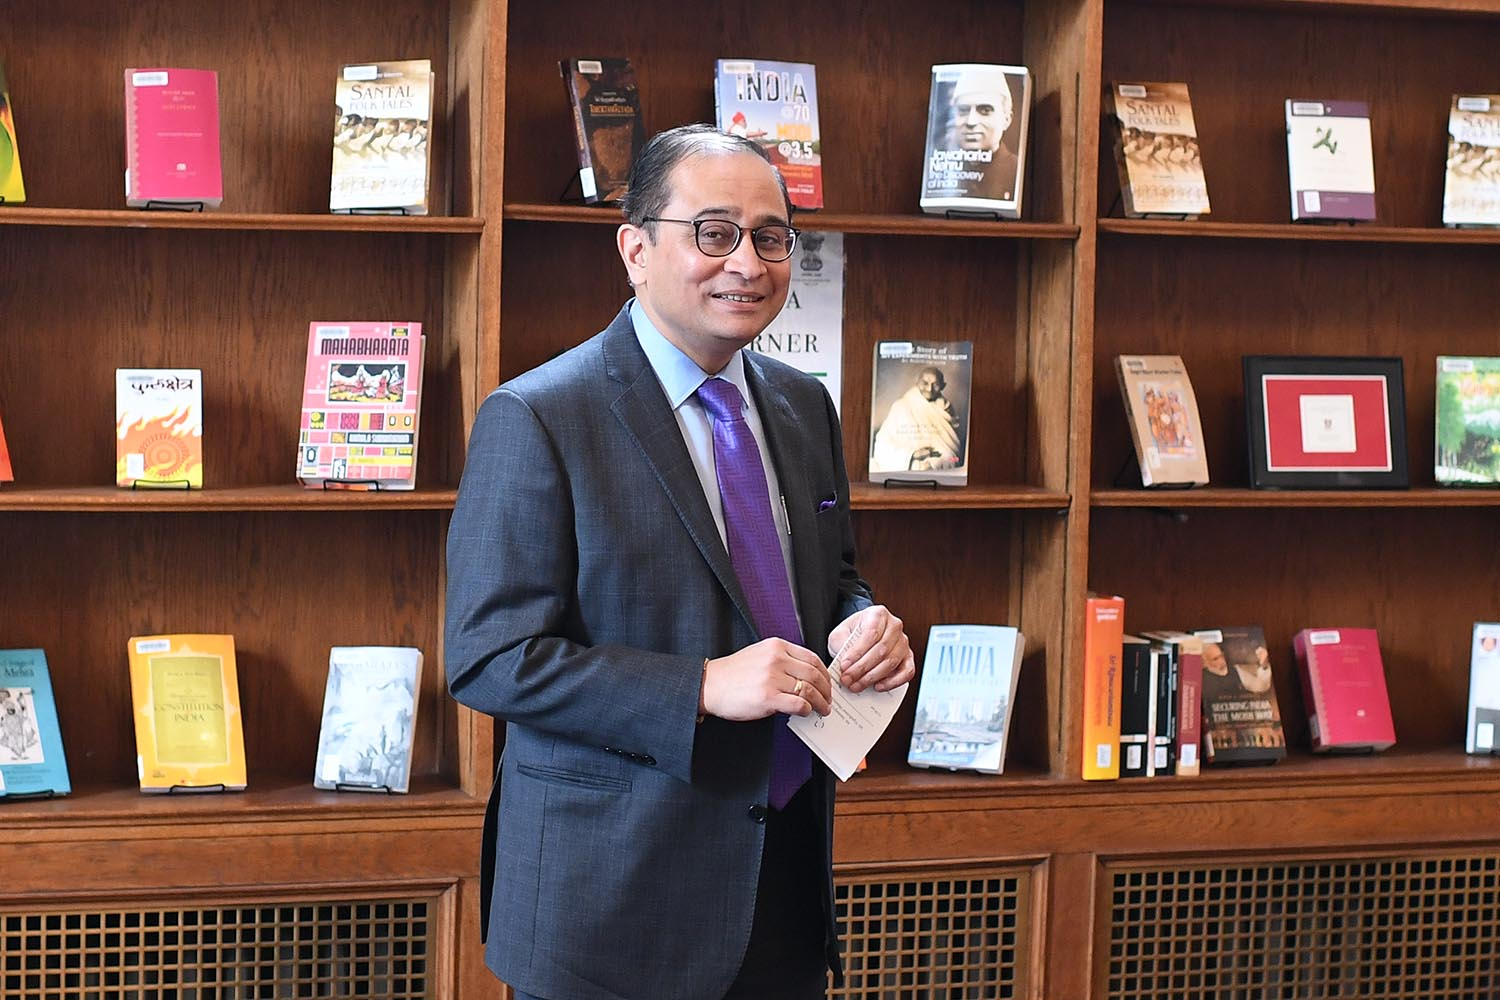 Consul Chakravorty, a member of the Indian Foreign Service (IFS) since 1996, became the Consul General of India in New York in August 2017. He was formerly the Ambassador of India to Peru and Bolivia.